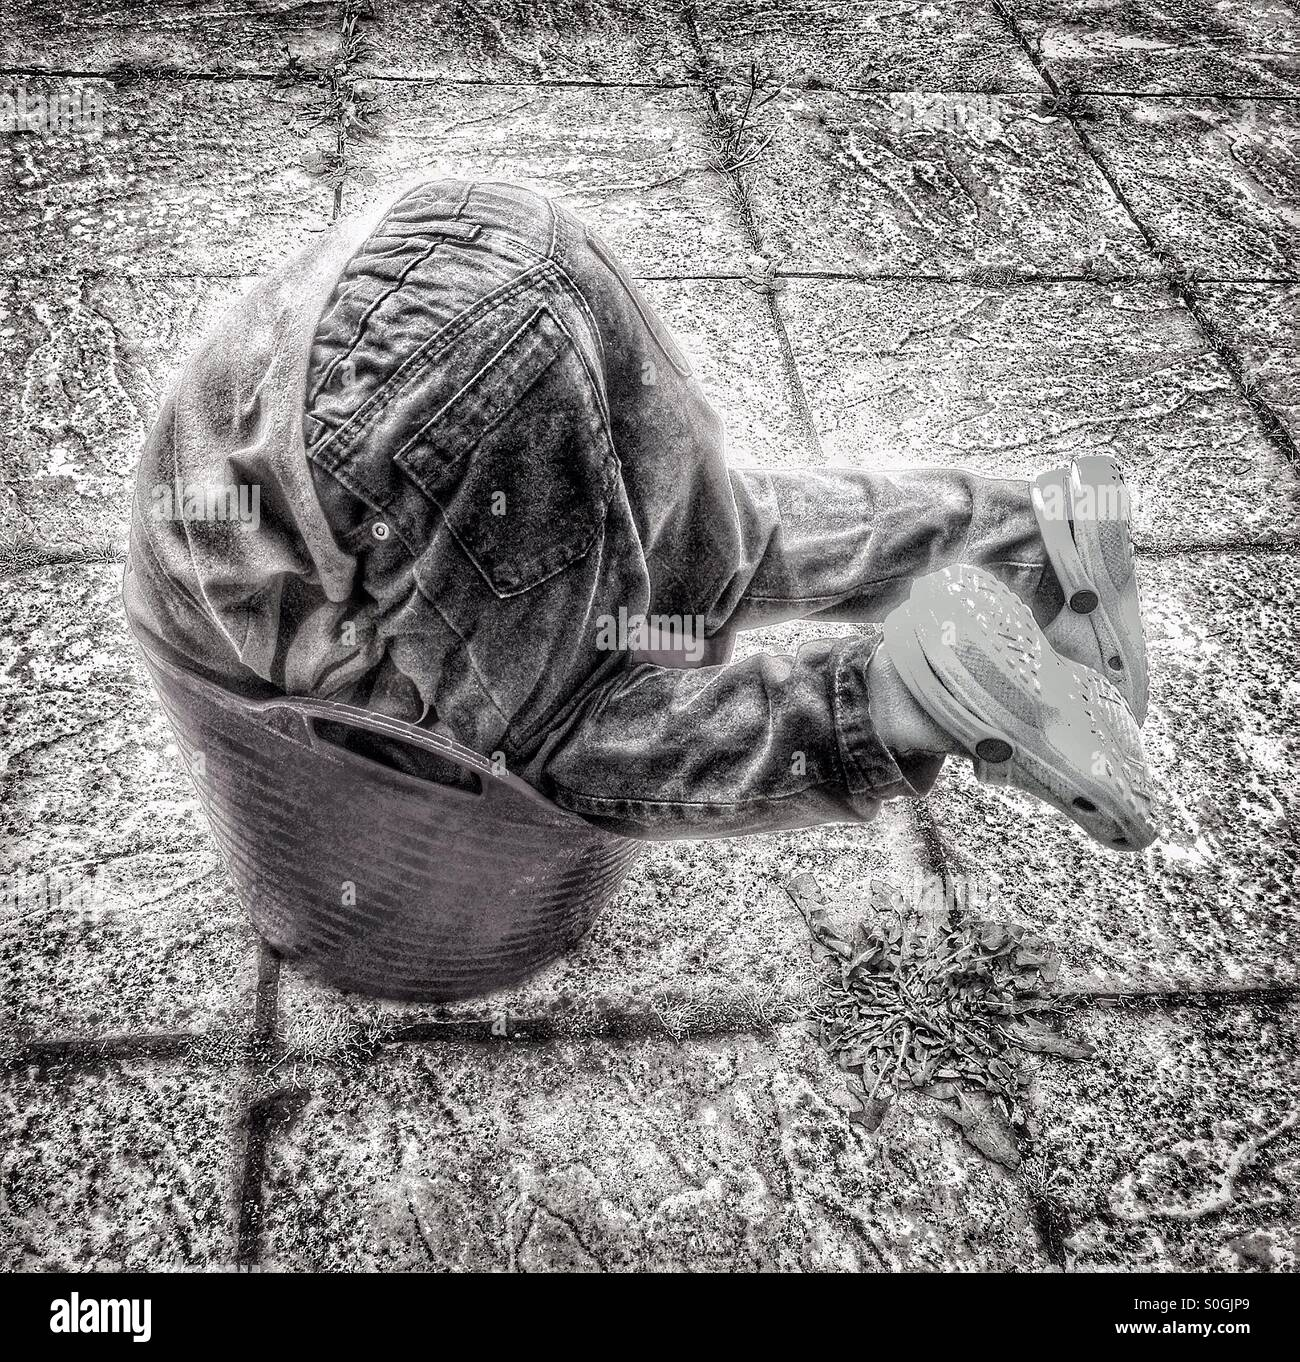 Child playing in a bucket. - Stock Image